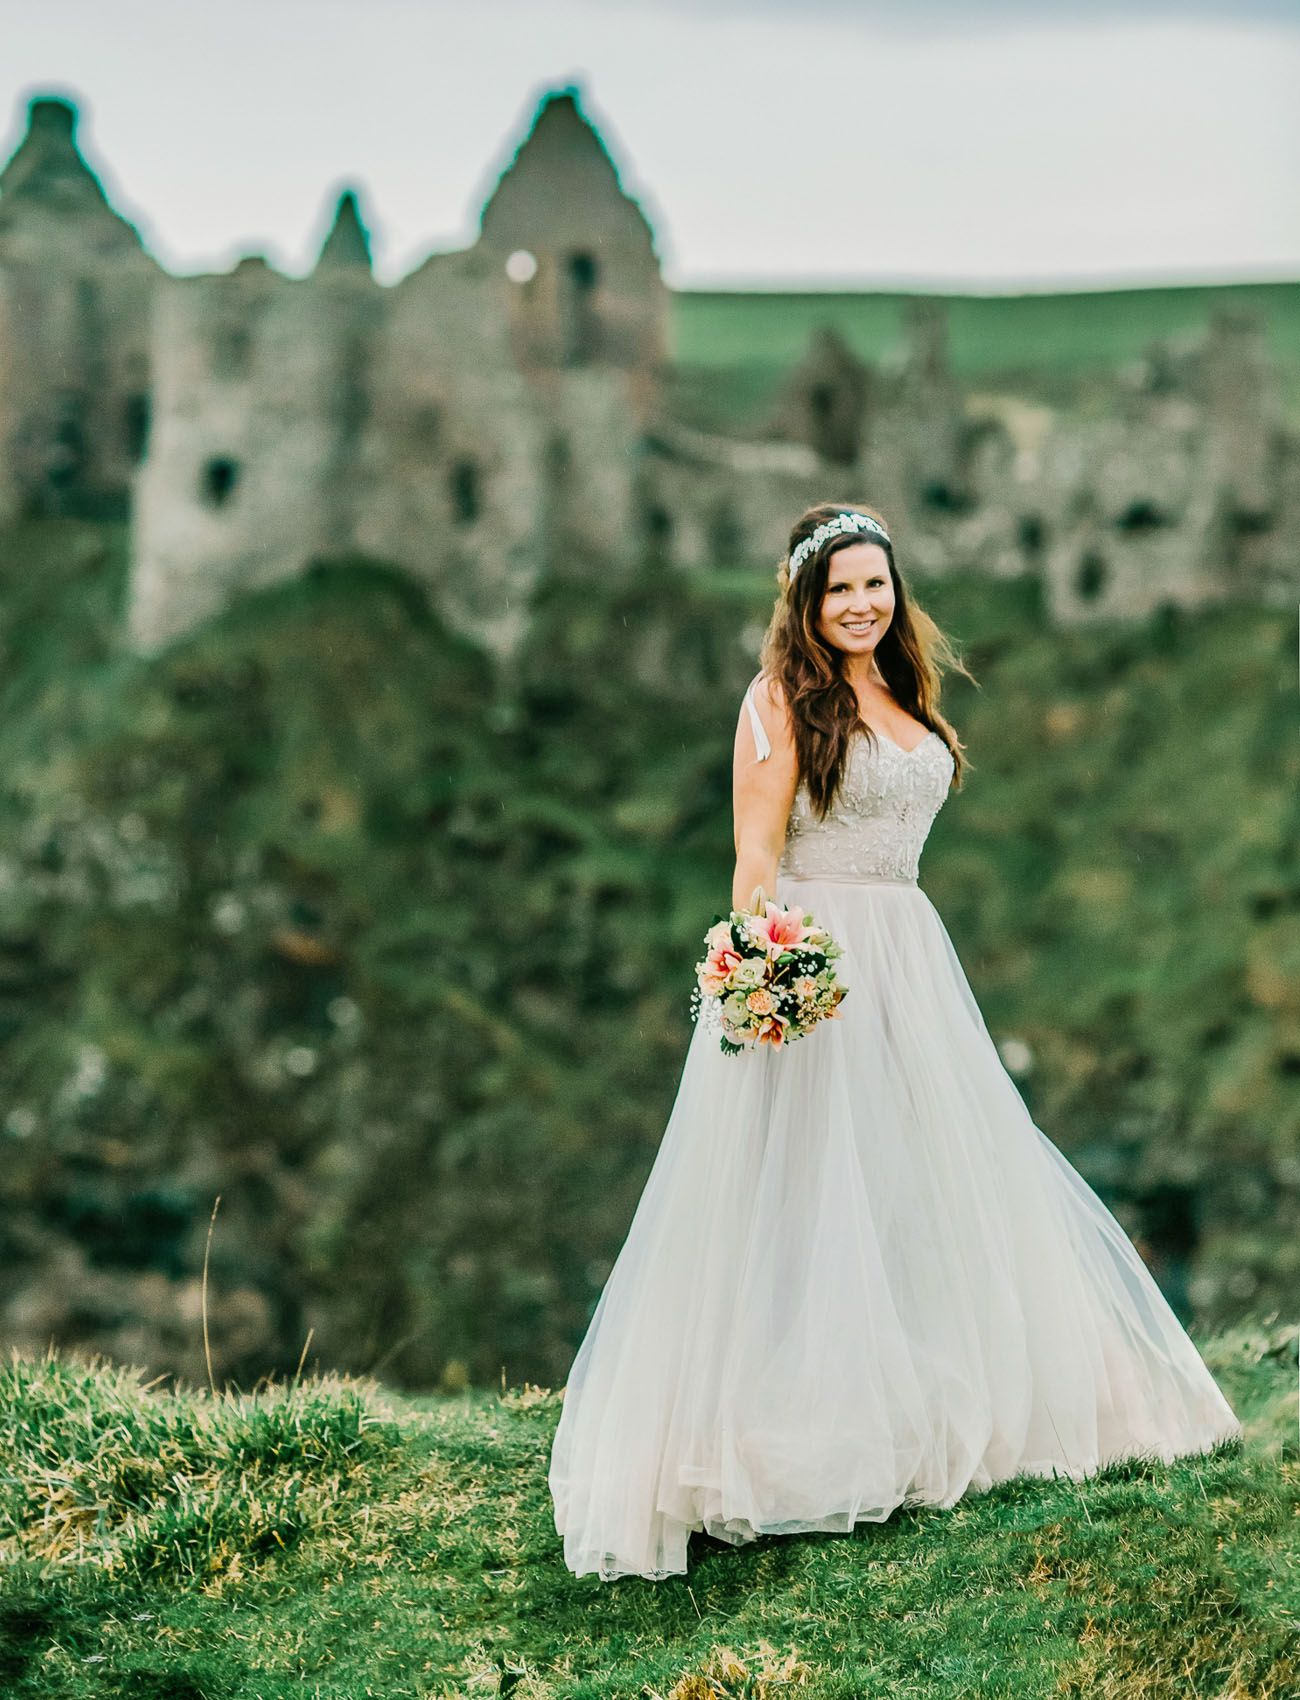 An Elopement Adventure From the Dark Hedges to a Castle in